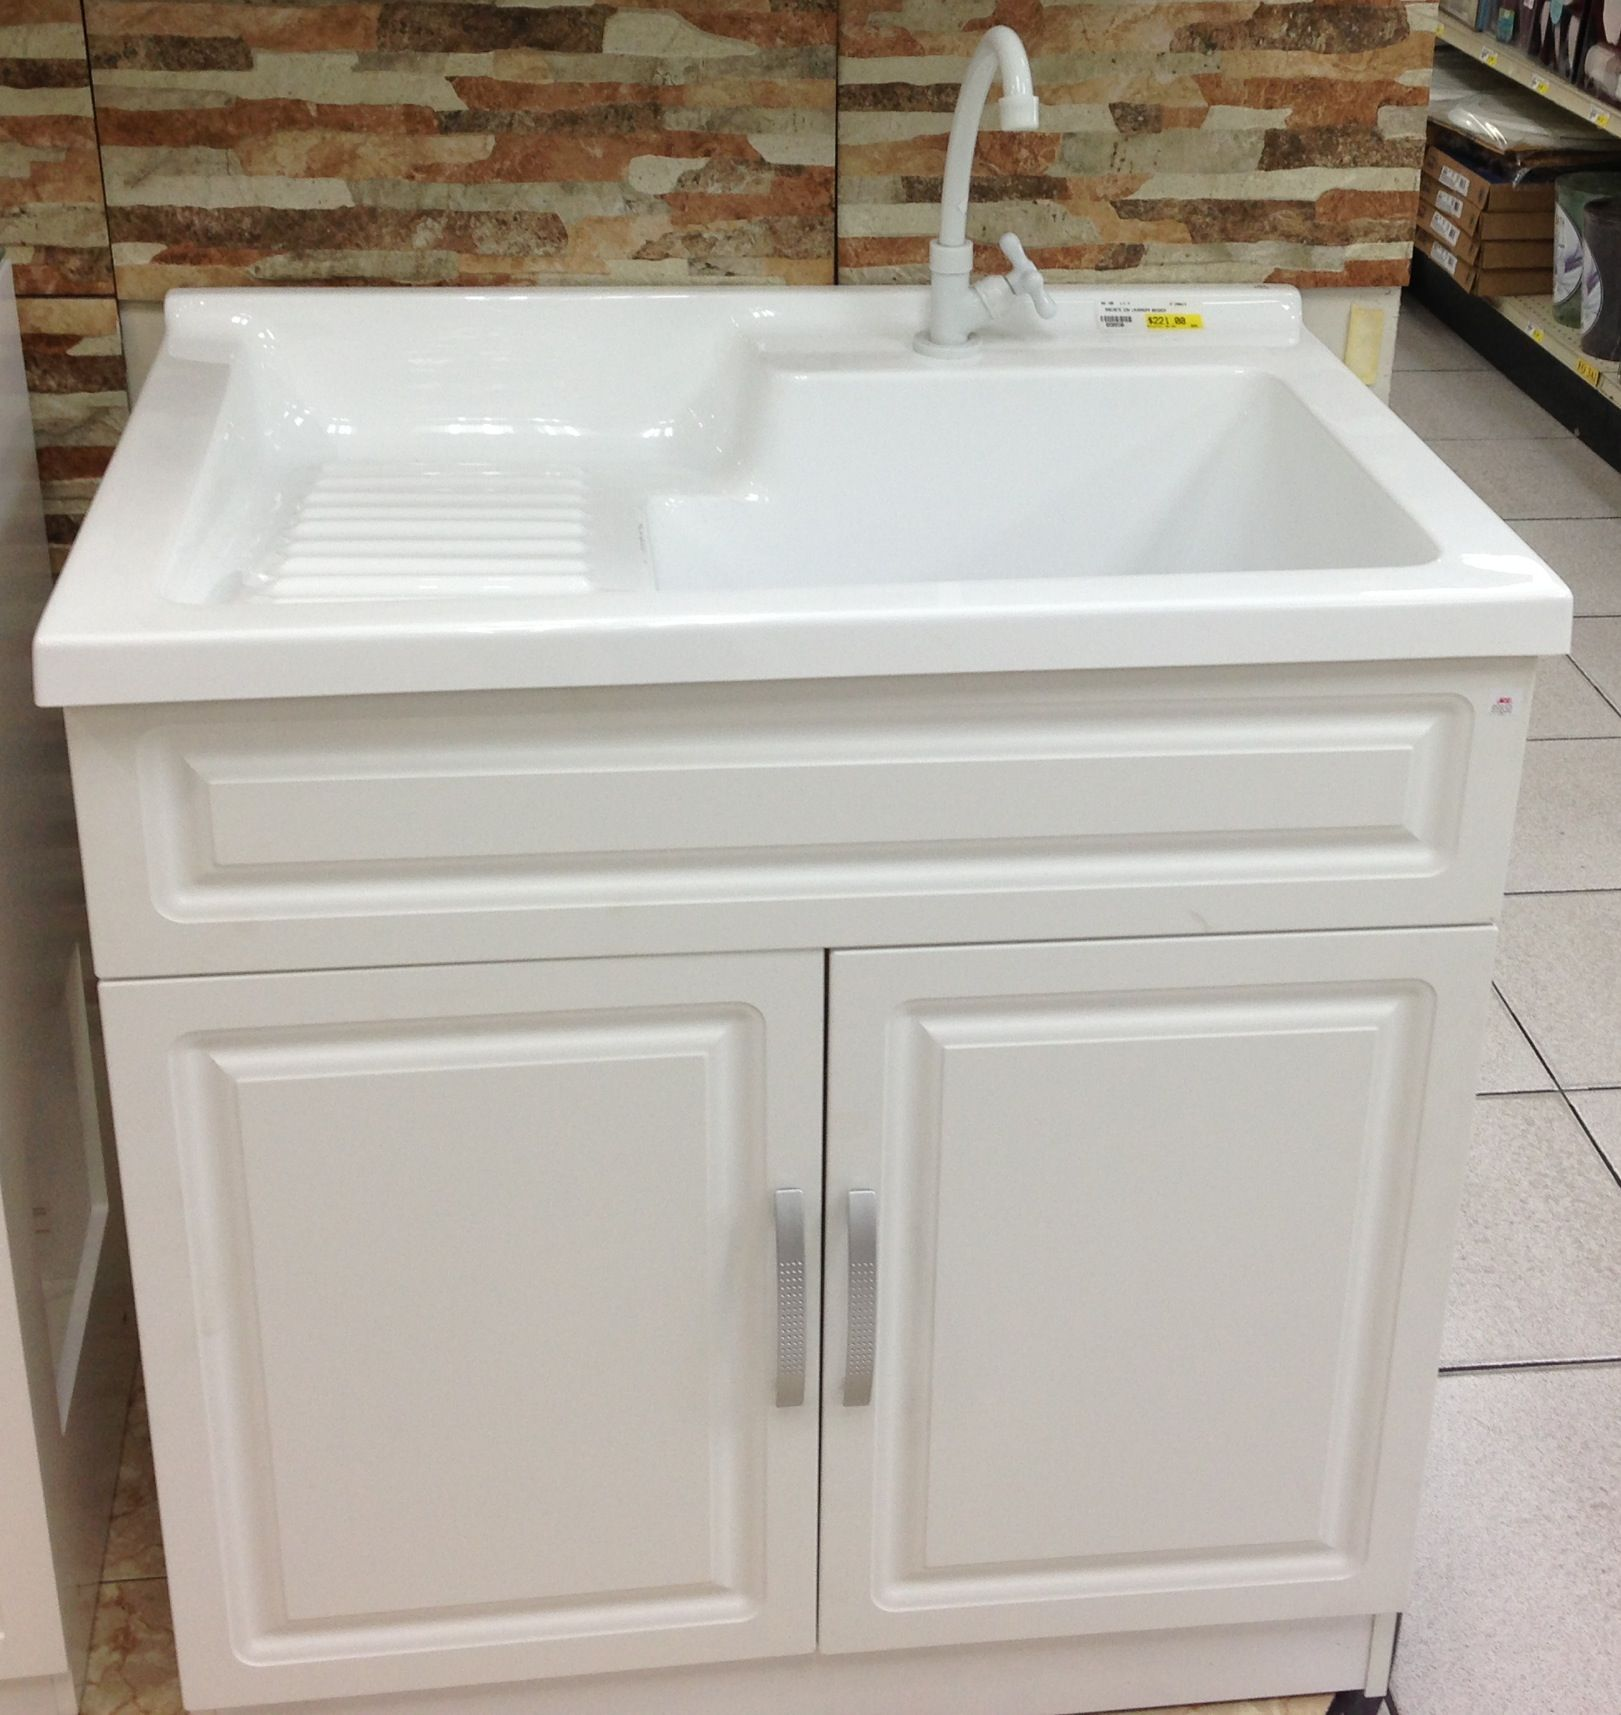 Functional Laundry Sink. Corstone Self Rimming at Lowes for $145 ...